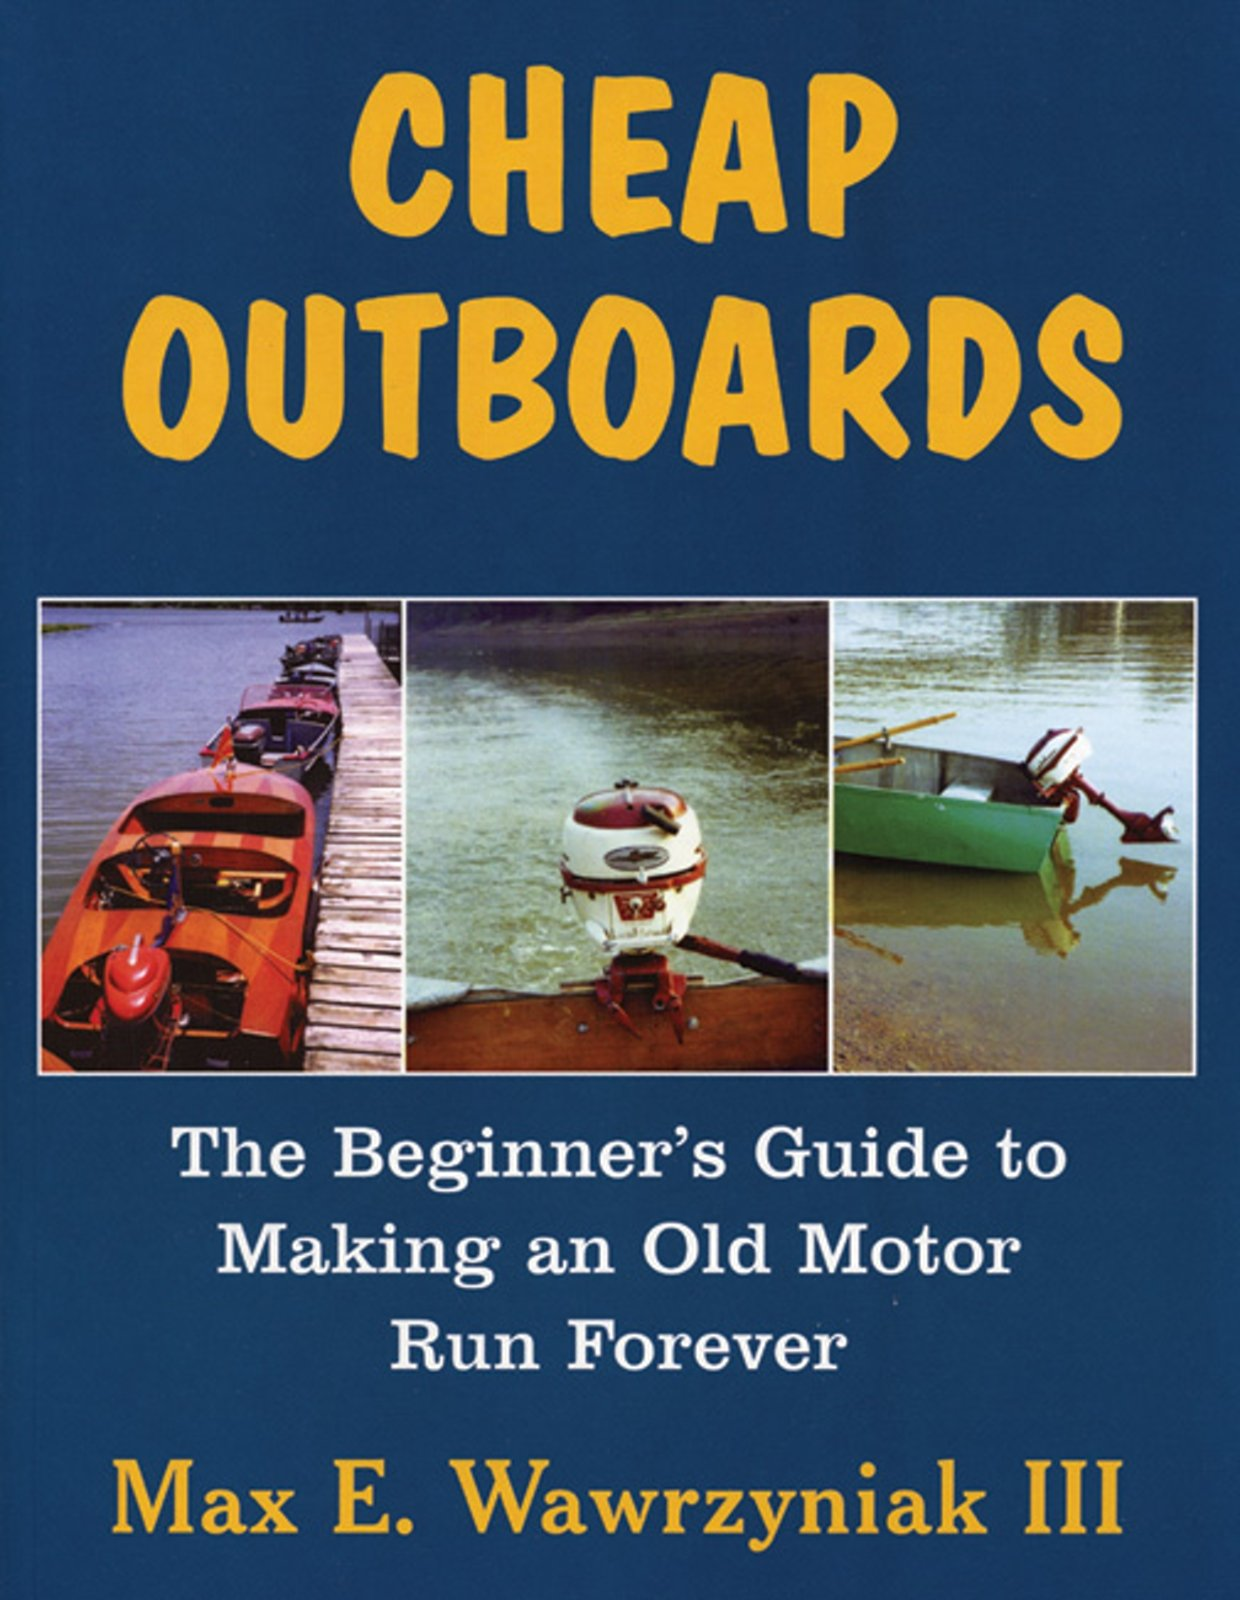 Cheap Outboards: The Beginner's Guide to Making an Old Motor Run Forever by Breakaway Books